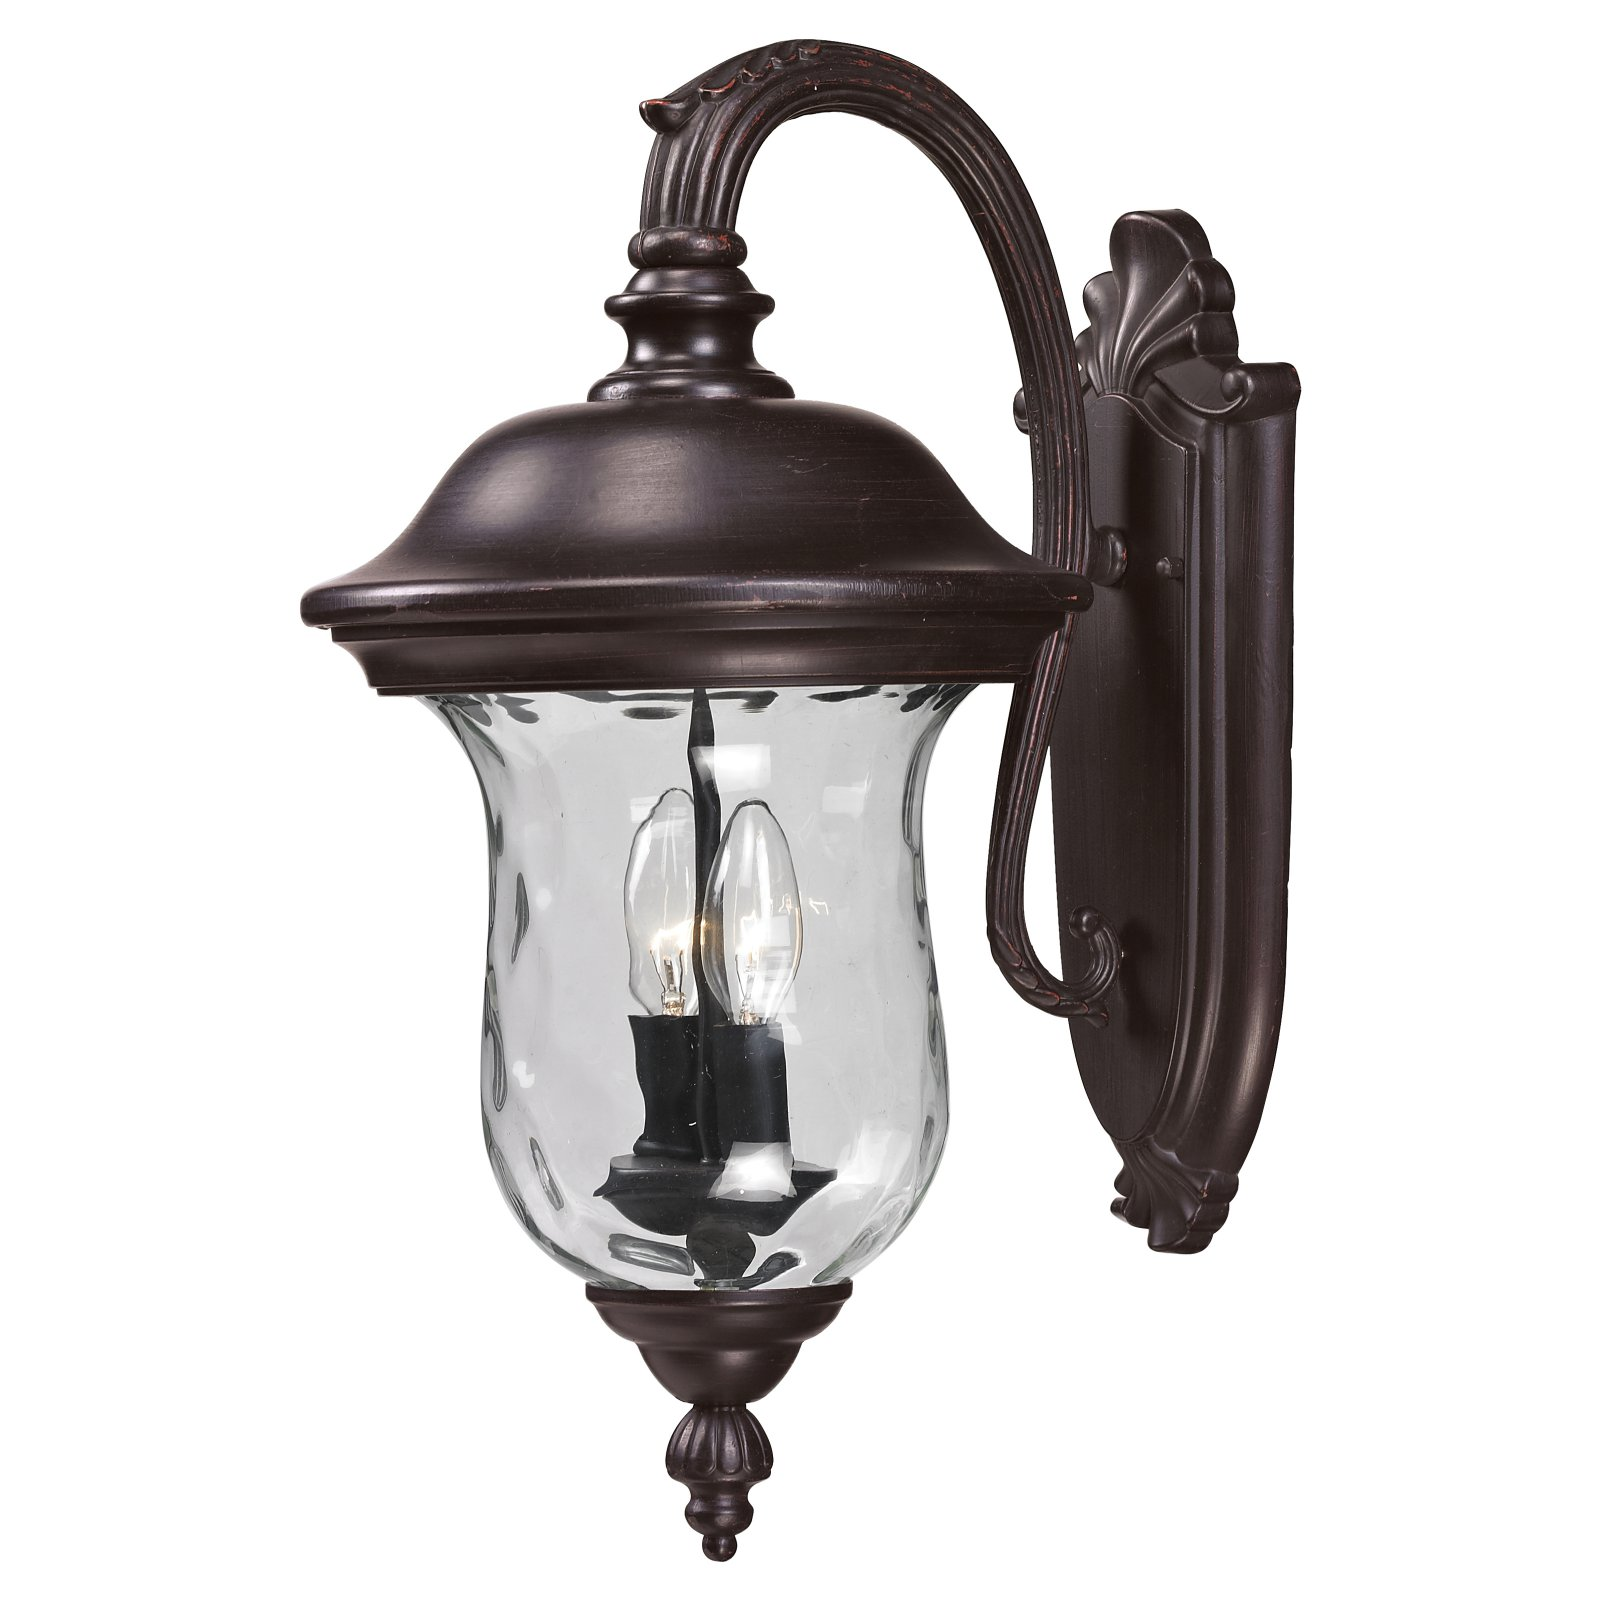 Z-Lite Armstrong Outdoor 2-Light Wall Sconce, Bronze